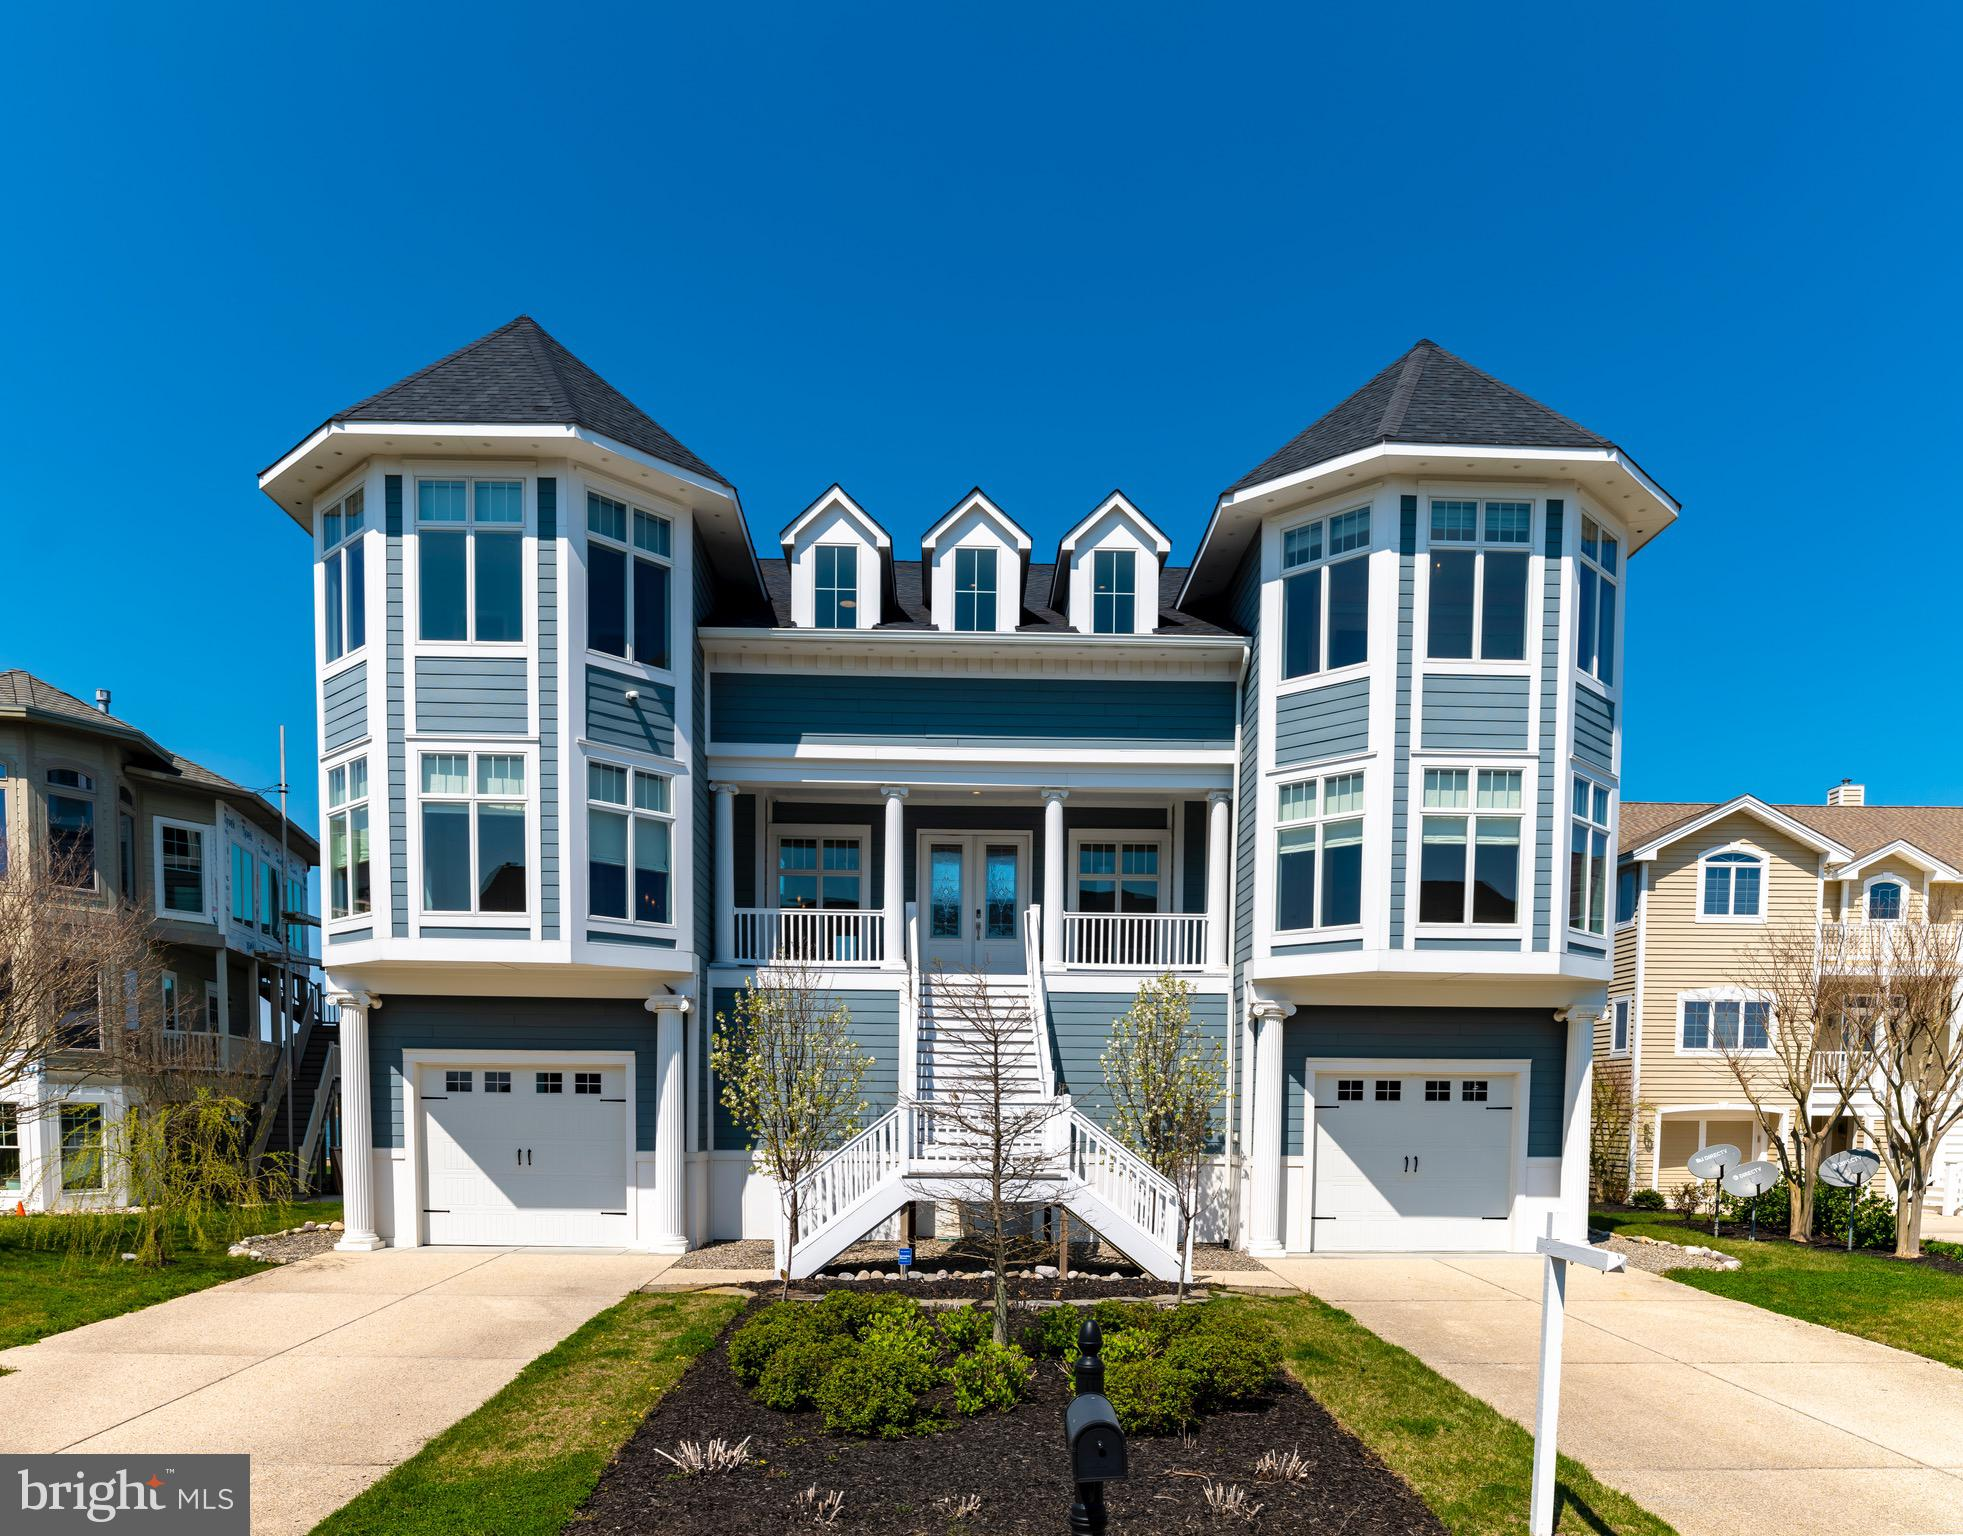 This unique home truly defines coastal lifestyle!  Located on the South Side of the Indian River Inlet. Within the protected boundaries of the State Park,  this home is only 5 miles from both Bethany and Rehoboth Beach.  The community of South Shore Marina is gated with amenities such as, a swimming pool, tennis courts, a clubhouse and a marina. The beach is accessible by bicycle, golf cart, on foot or by car (beach parking is provided by State Park.) Other activities include oceanfront dining and various State Park amenities along with a restaurant right down the street! After you've enjoyed a fun-filled day, it's time to go and enjoy your 12,000 sqft WATERFRONT home - newly built in 2016. There is a water view from every window! This home features 7 bedrooms, 6 full baths and 2 half baths.  Notable features include partial steel framing, Wolfe appliances, double laundry rooms (lower and upper floor) and an elevator. To say the least, this home is designed to entertain both families and guests and guaranteed to be the most spacious within this price point.  The open floor plan and cathedral ceilings create an extremely high end setting.  The owners built this home to personal standards that convey quality and craftsmanship at every corner.  You're invited to come see this home for yourself!